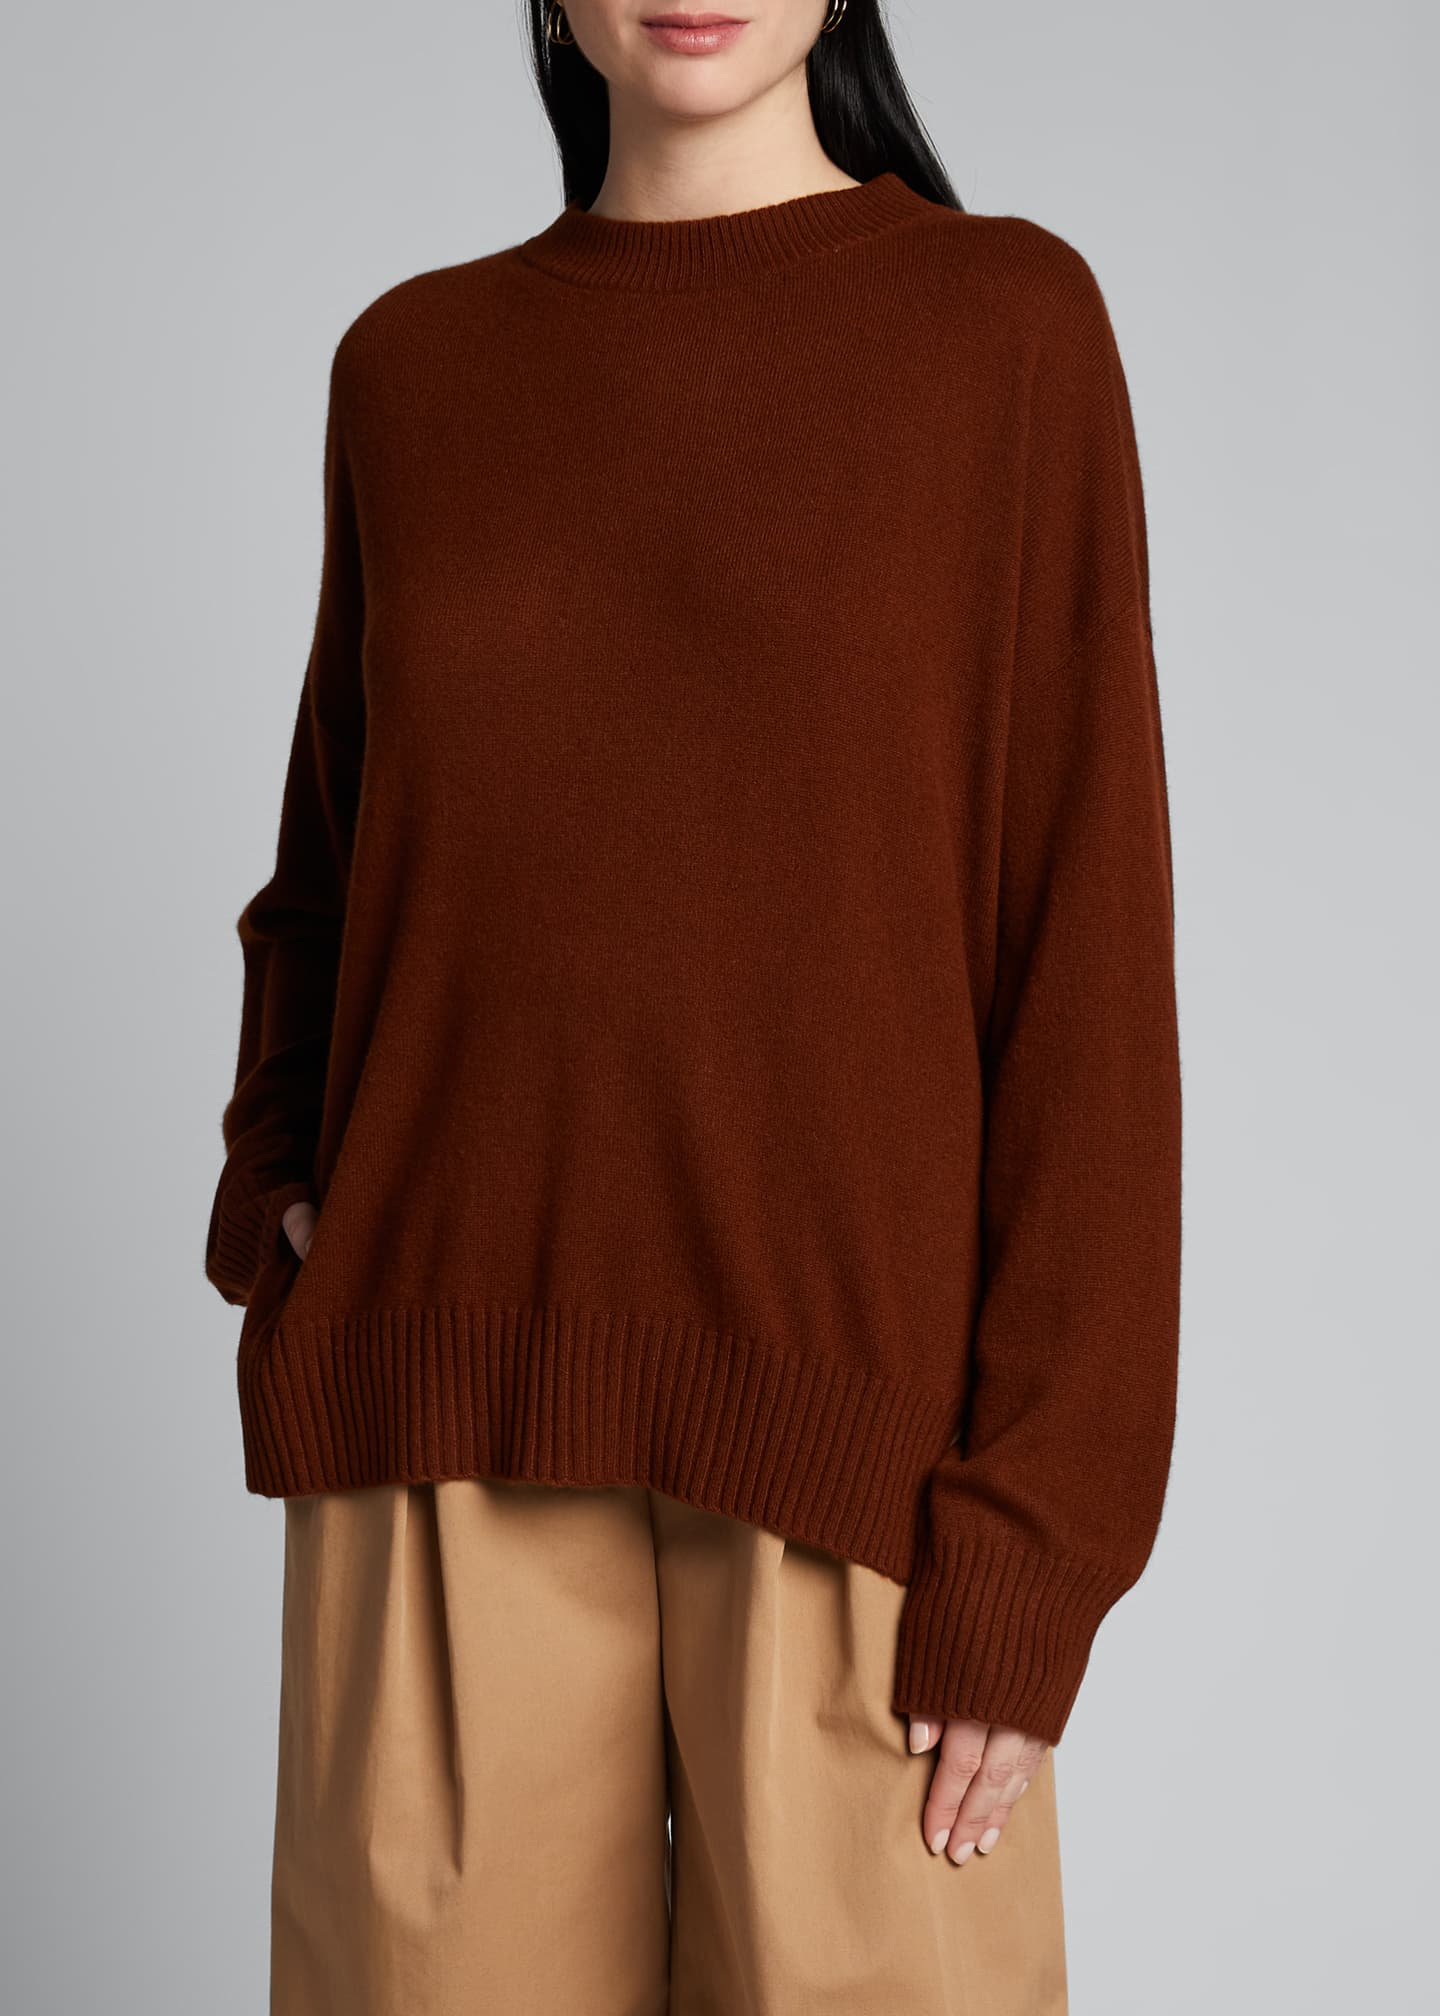 Image 3 of 5: Cashmere Crewneck Sweater